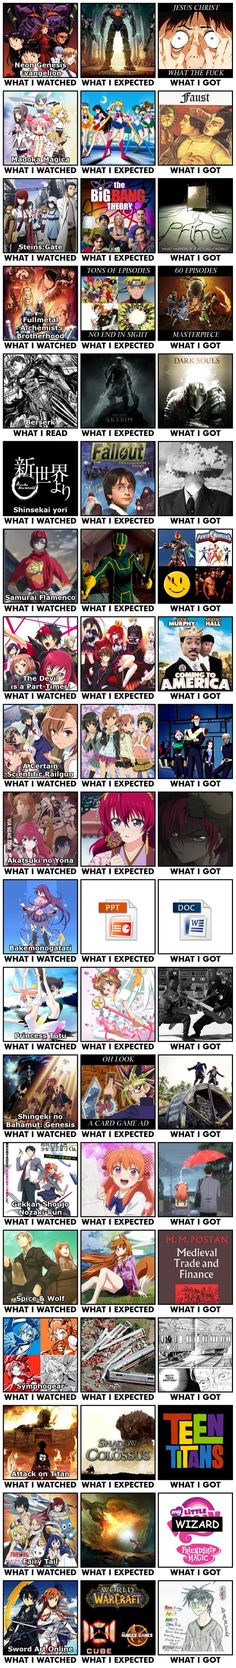 What I Watched - What I Expected - What I Got - 9GAG